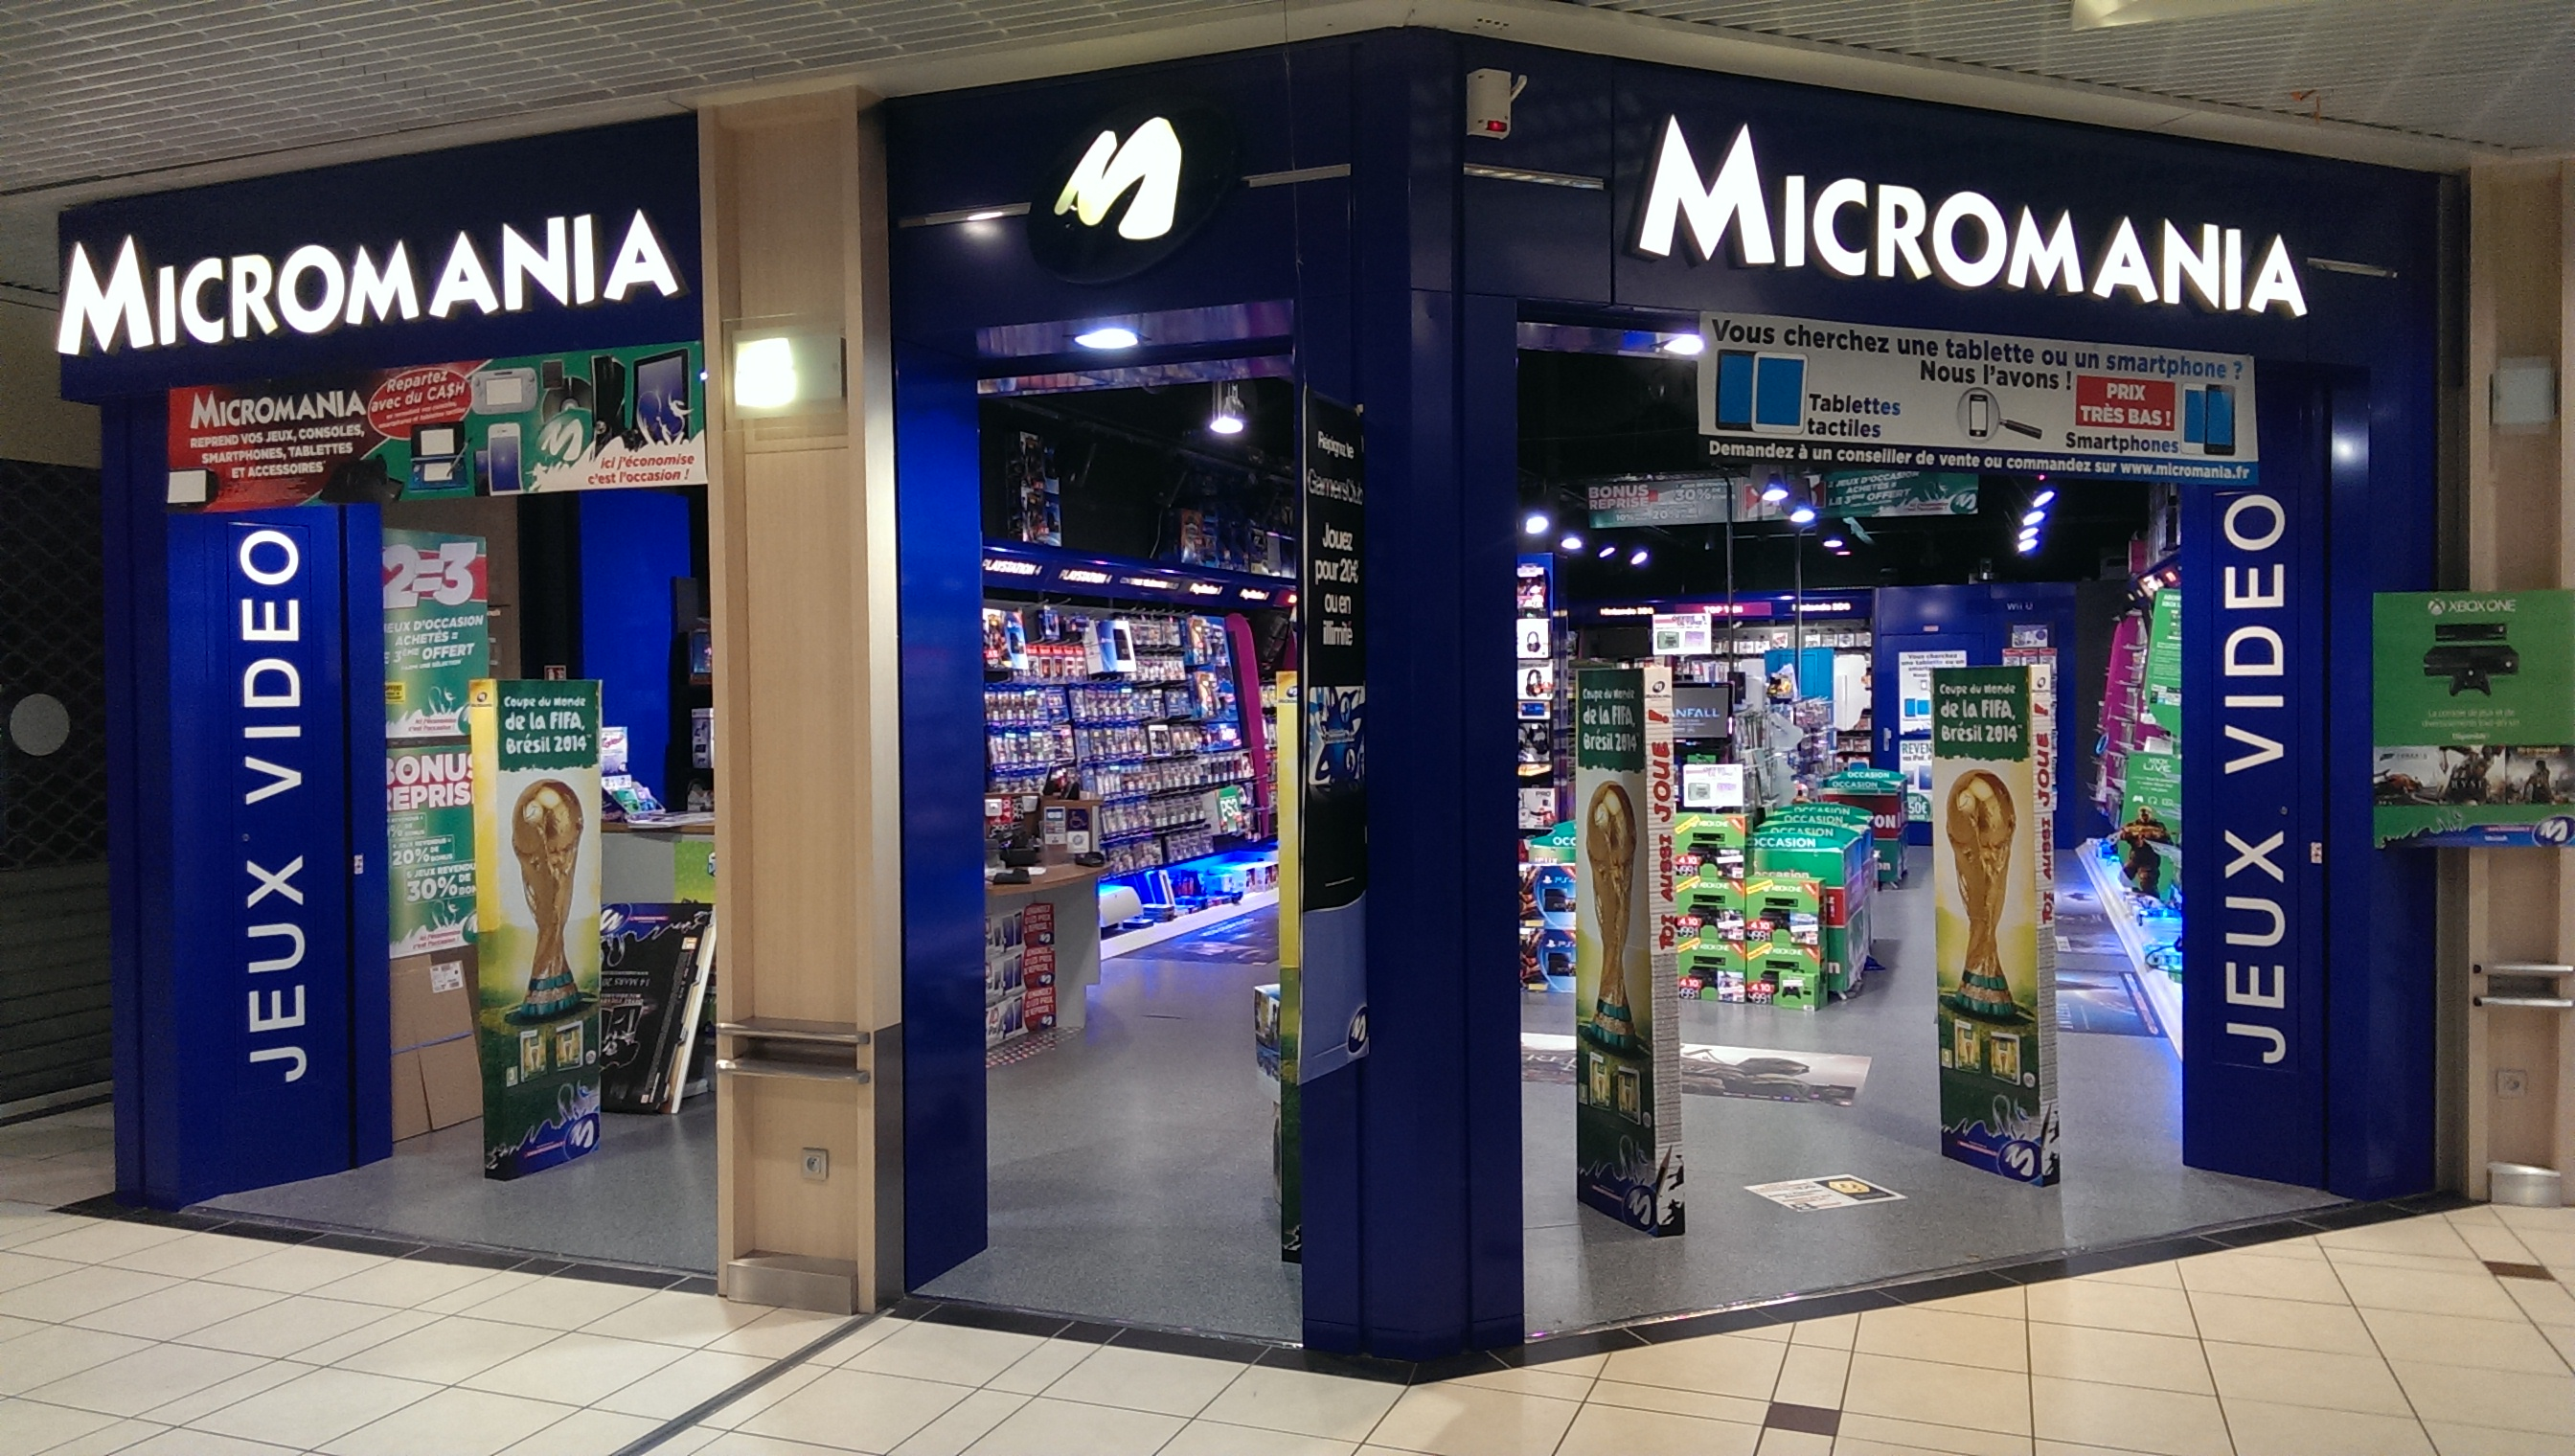 Roques Centre Commercial Magasin Micromania Roques Infos Et Adresse Micromania